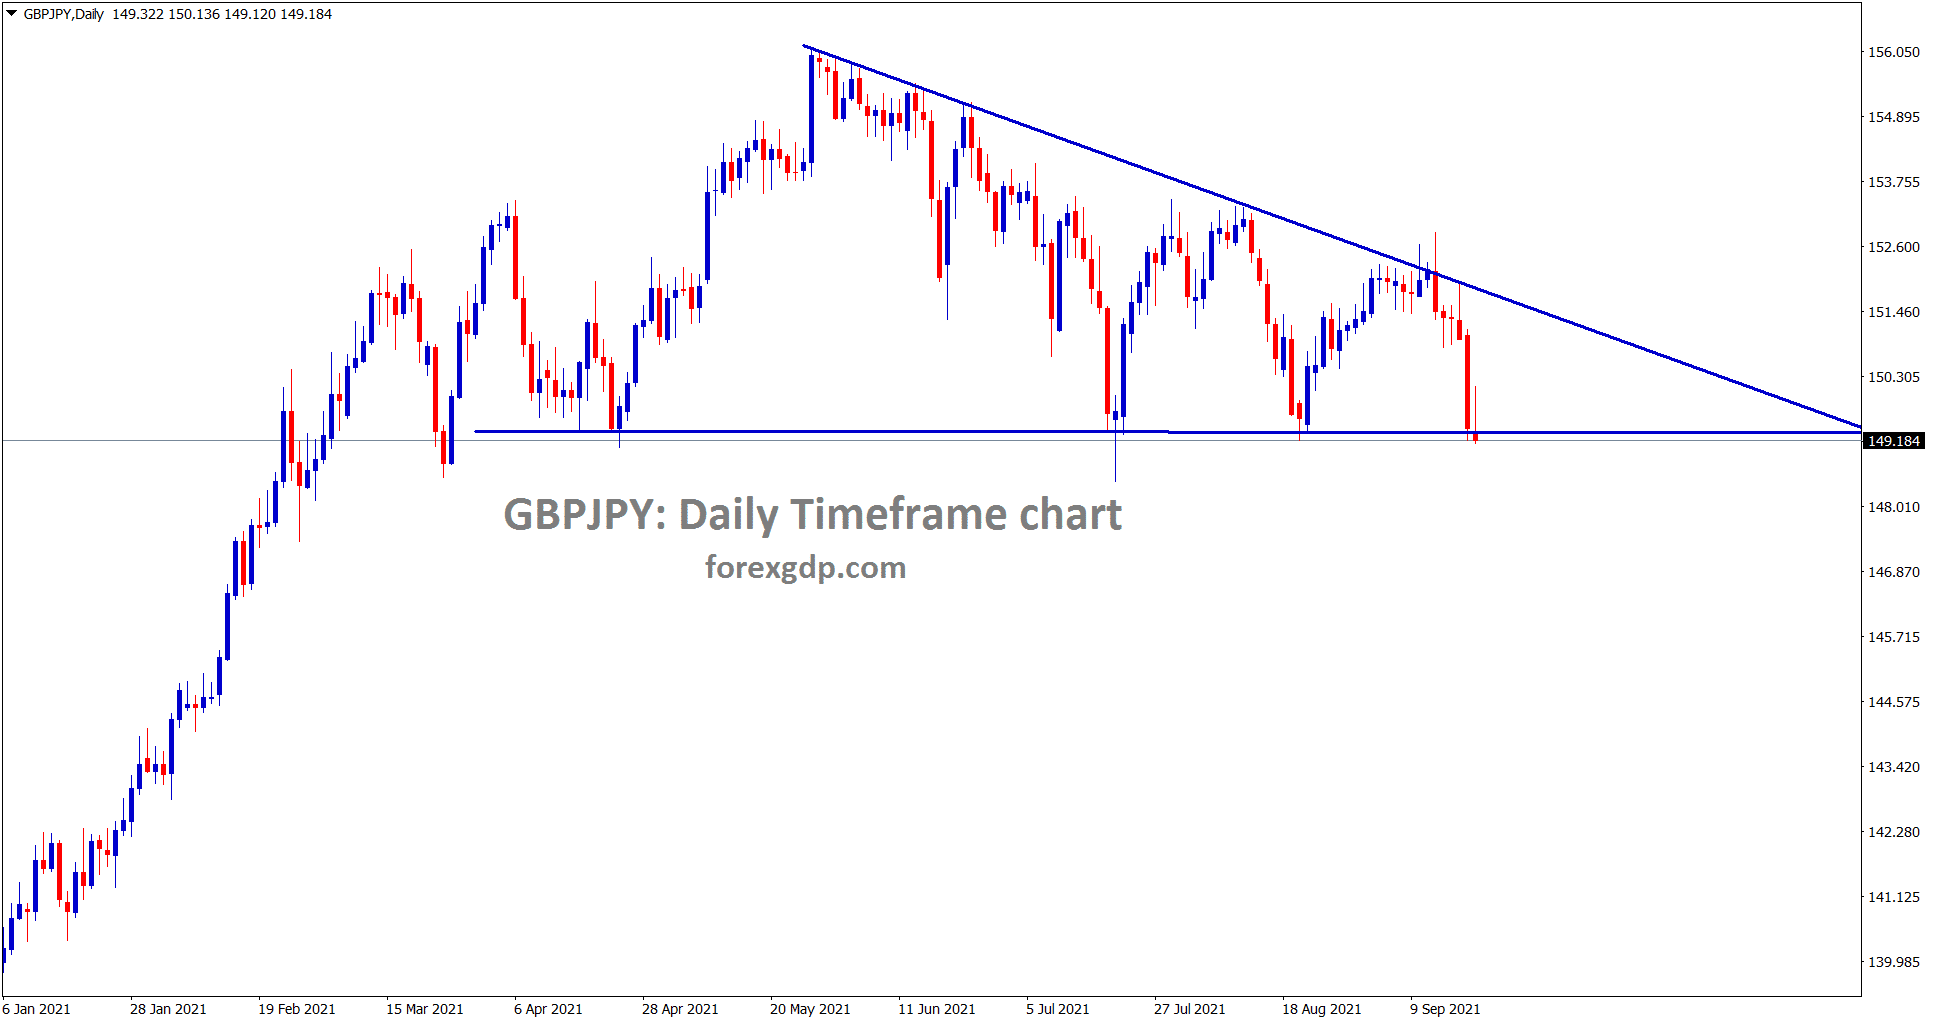 GBPJPY is standing exactly at the support area of descending triangle pattern